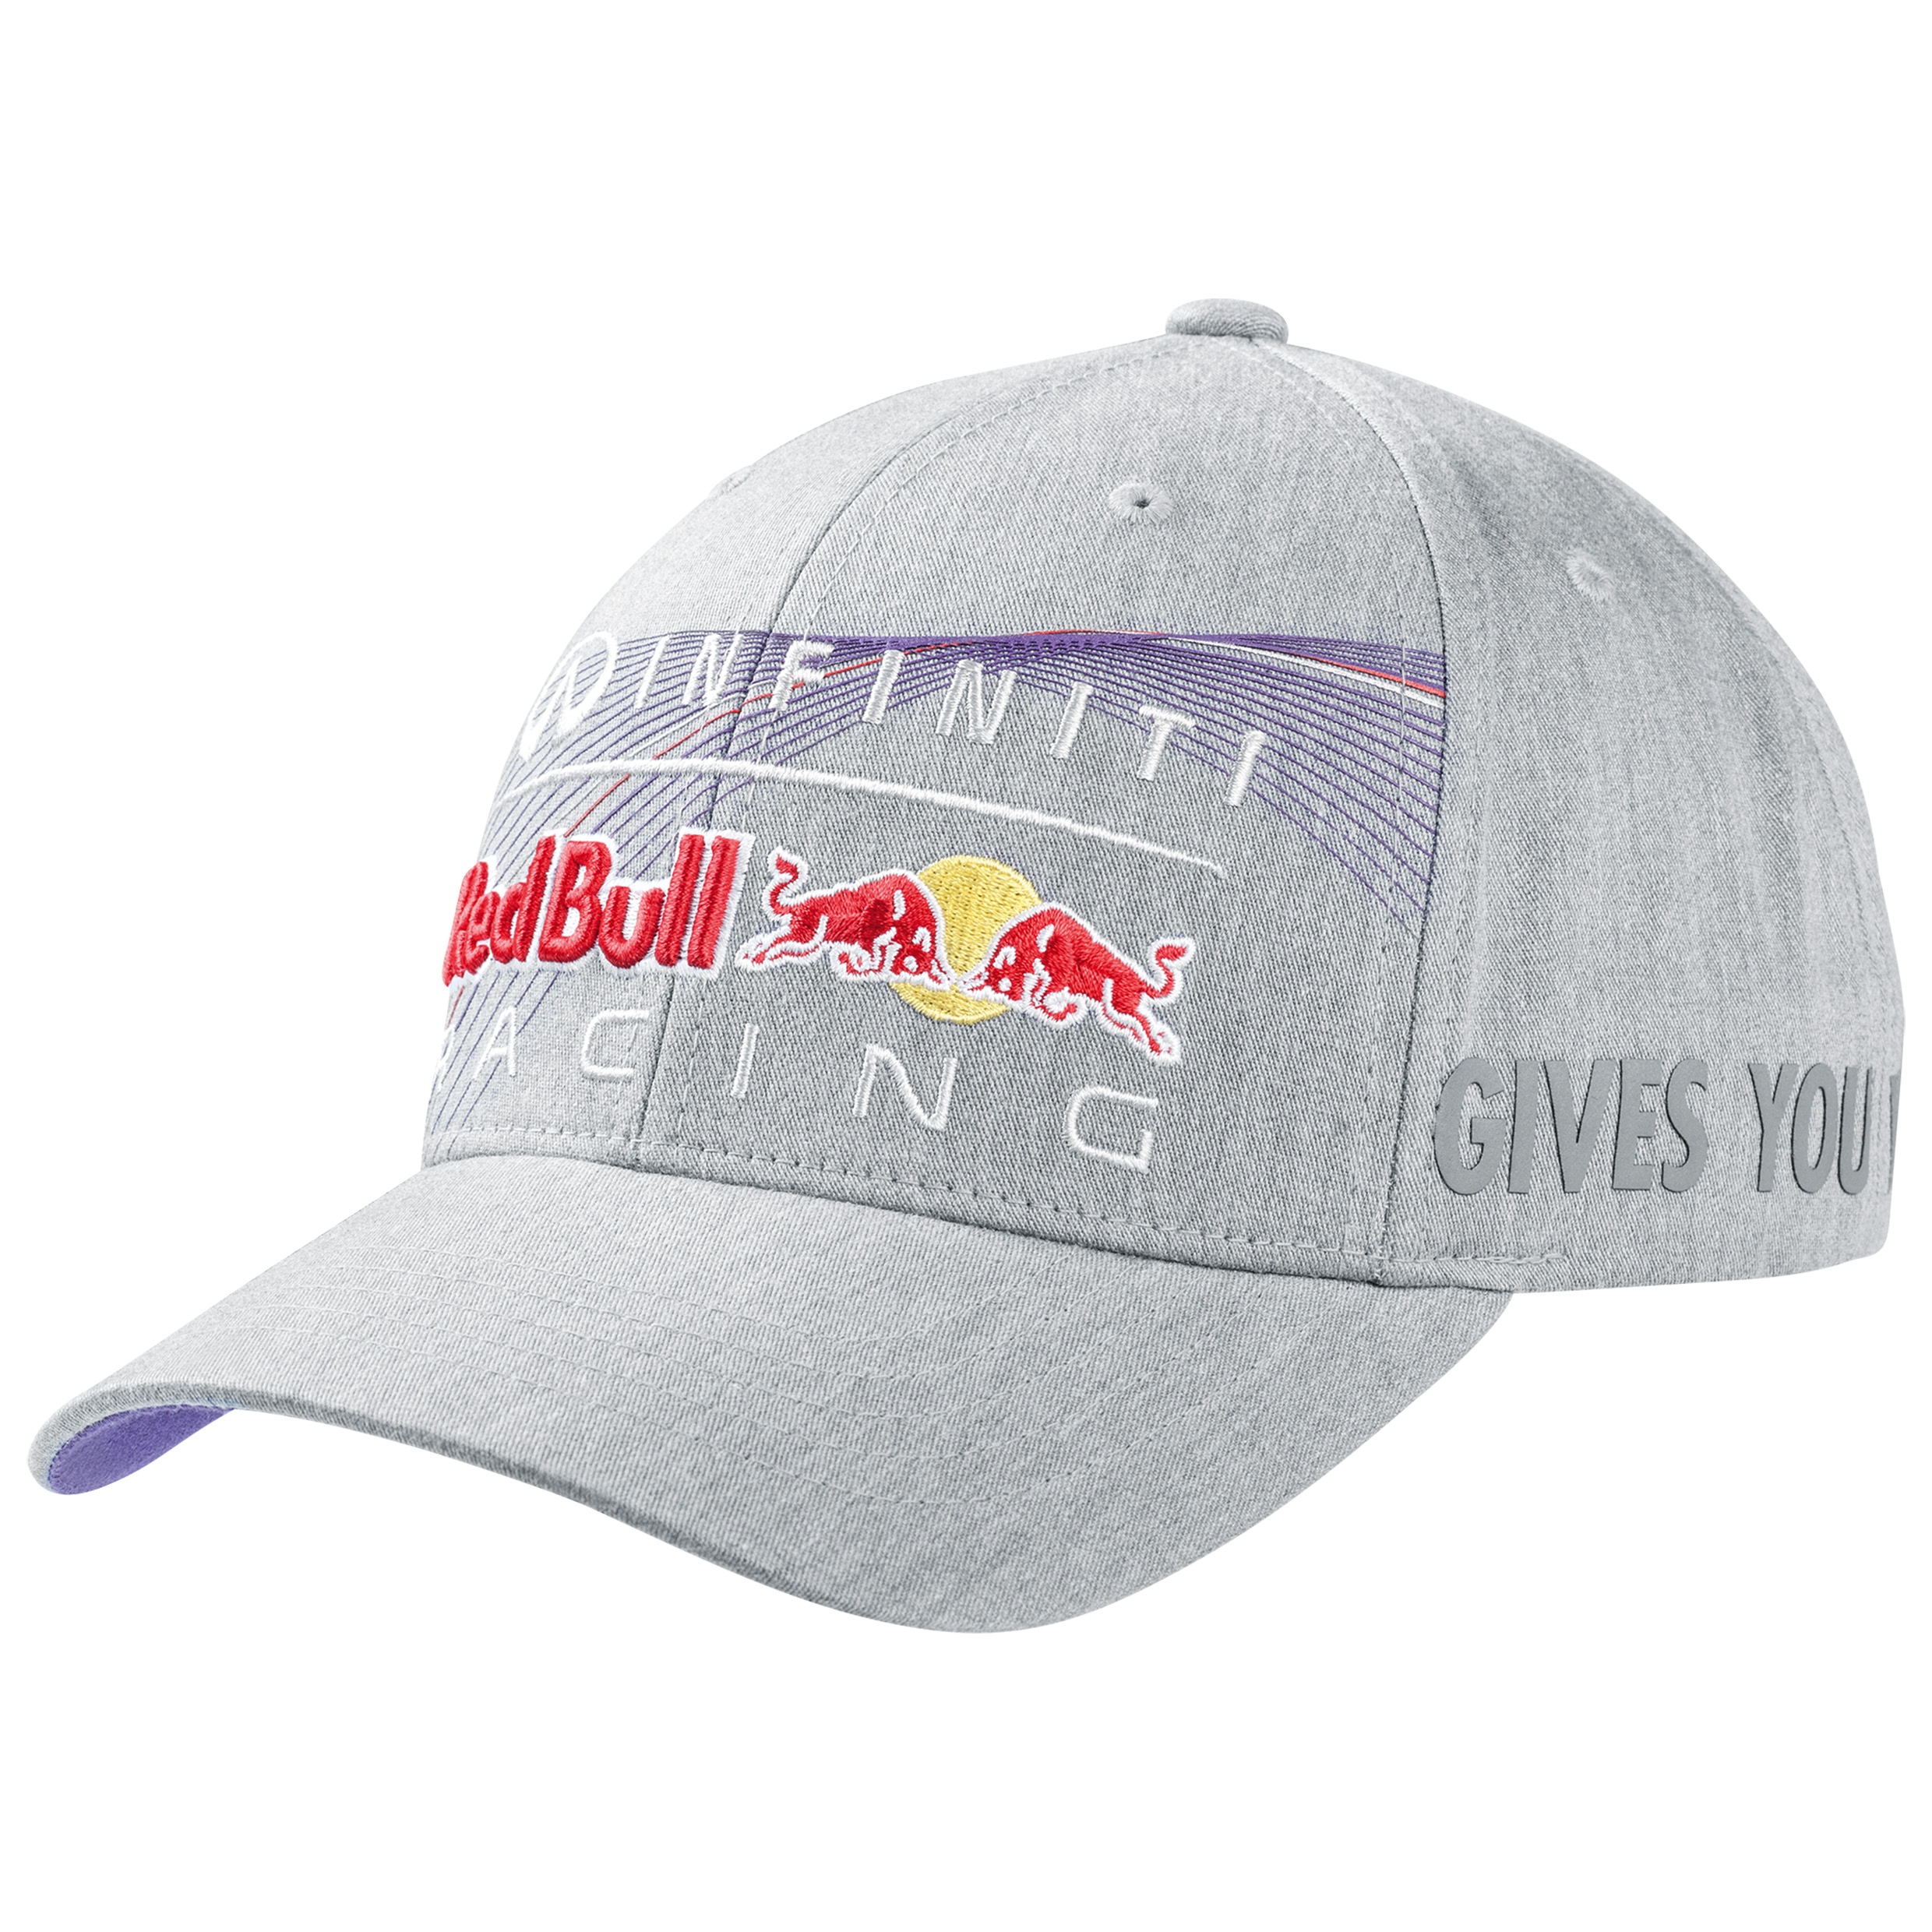 Infiniti Red Bull Racing Race Logo Cap Grey